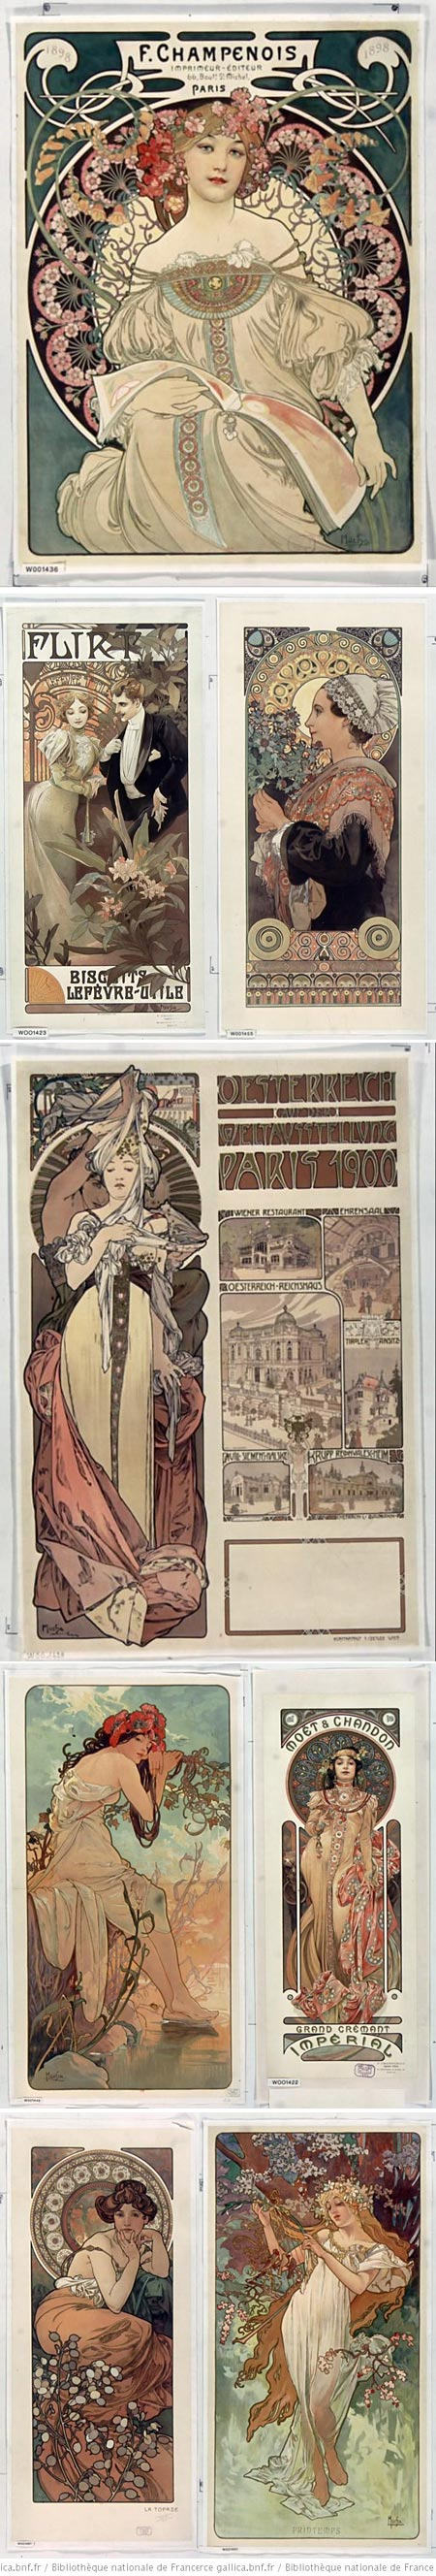 Alphonse Mucha on Gallica Digital Library